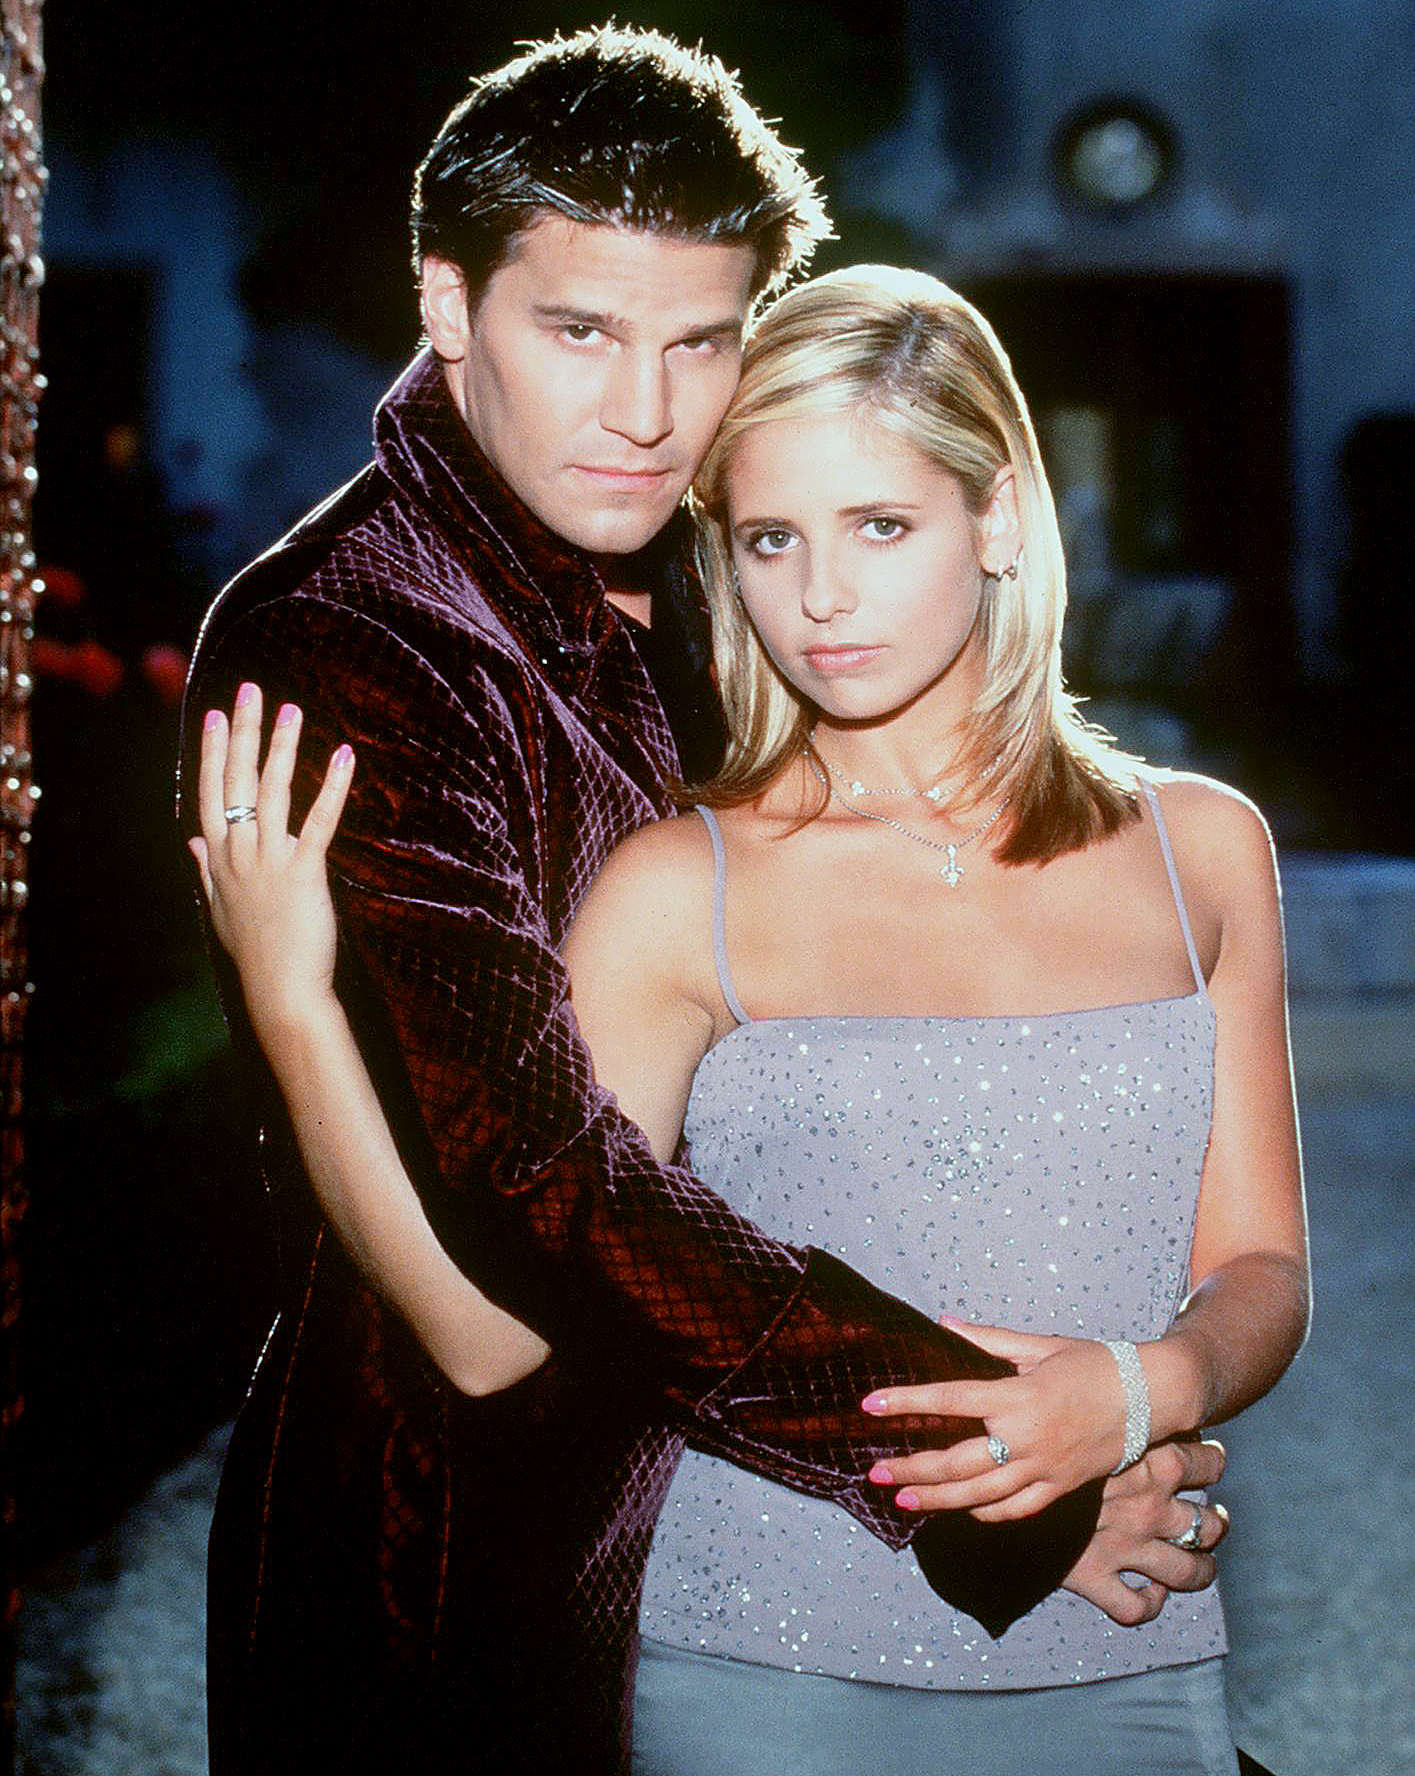 Sarah Michelle Gellar and David Boreanaz in 1998